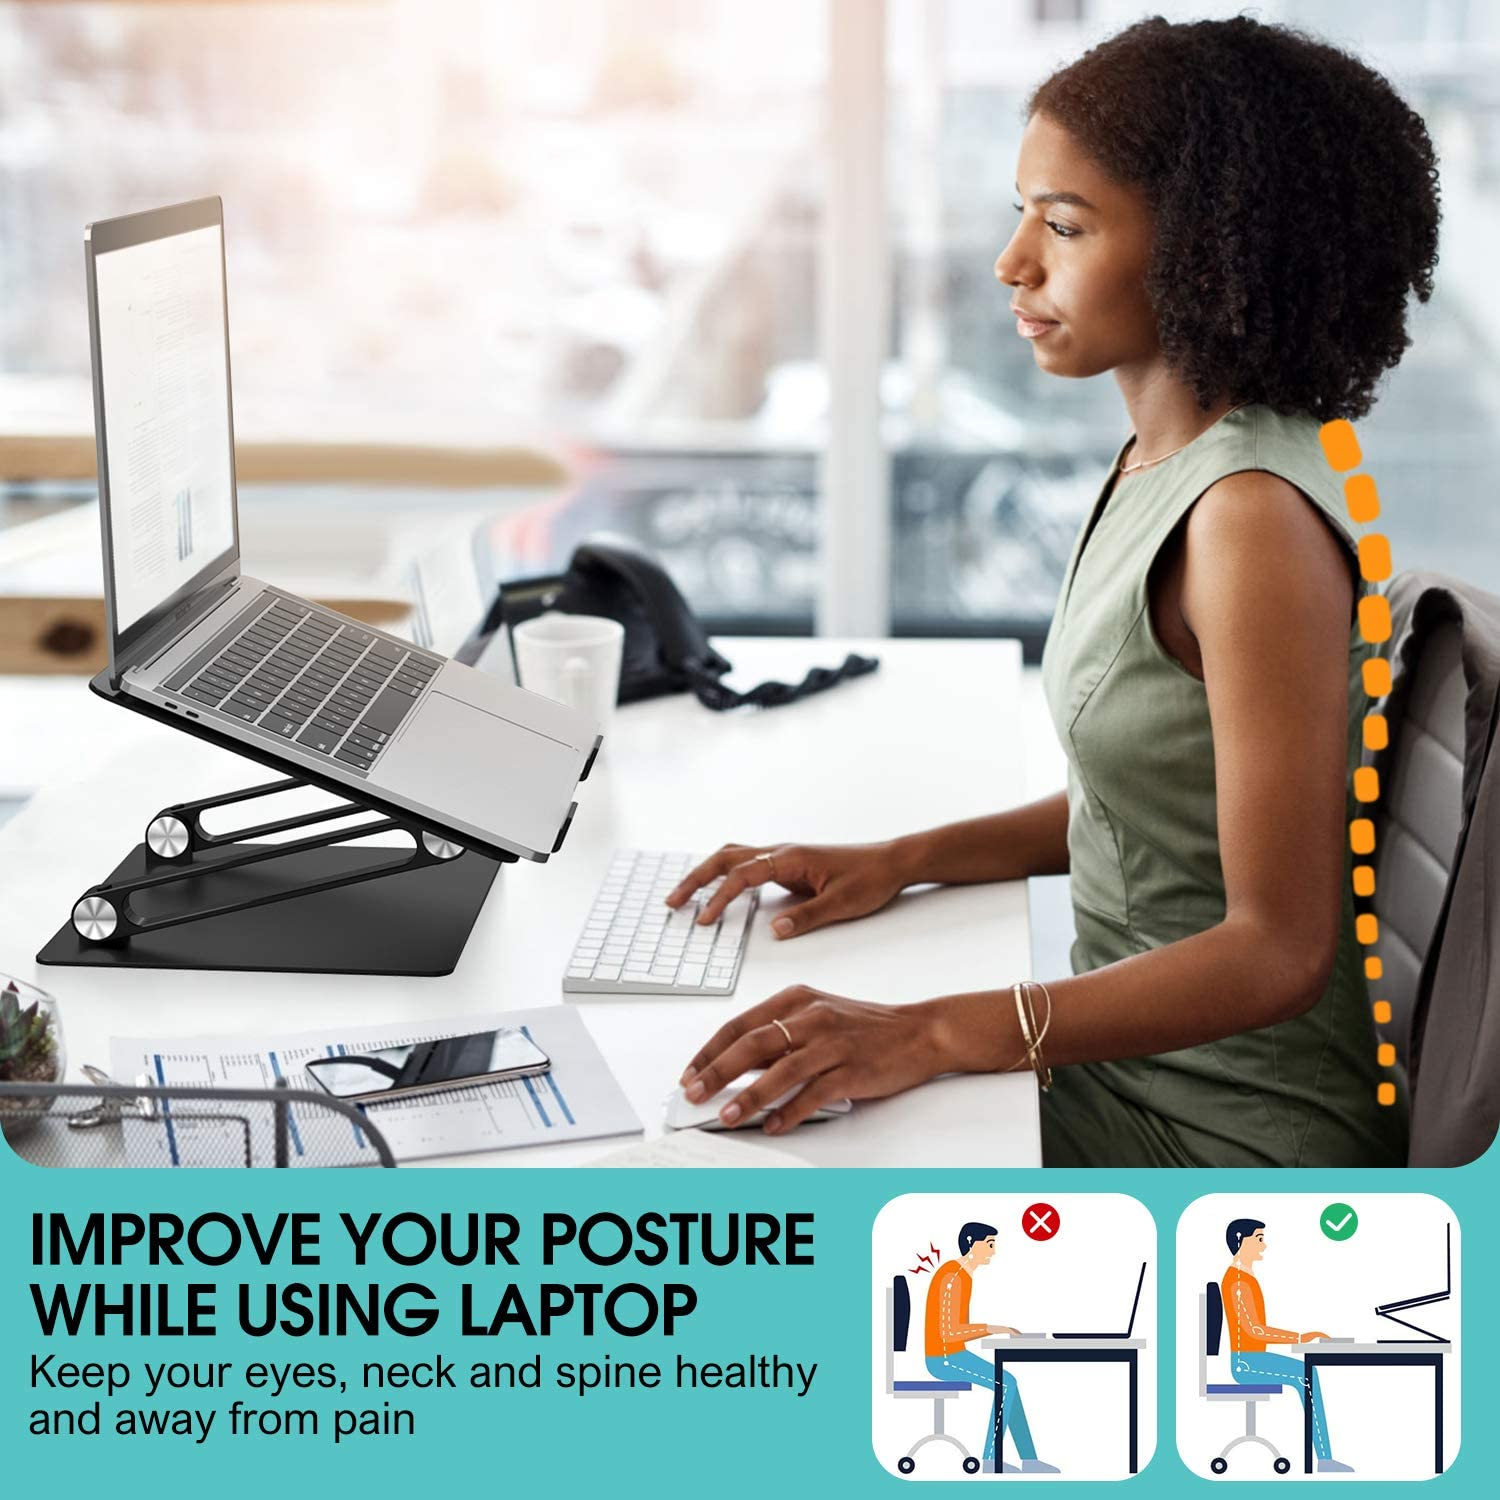 Laptop Stand Black Aluminum Portable Computer Riser with Heat-Vent Foldable Desktop Laptop Holder Compatible with MacBook Air Pro All 10 to 17 Inch Laptops Ergonomic Adjustable Notebook Stand